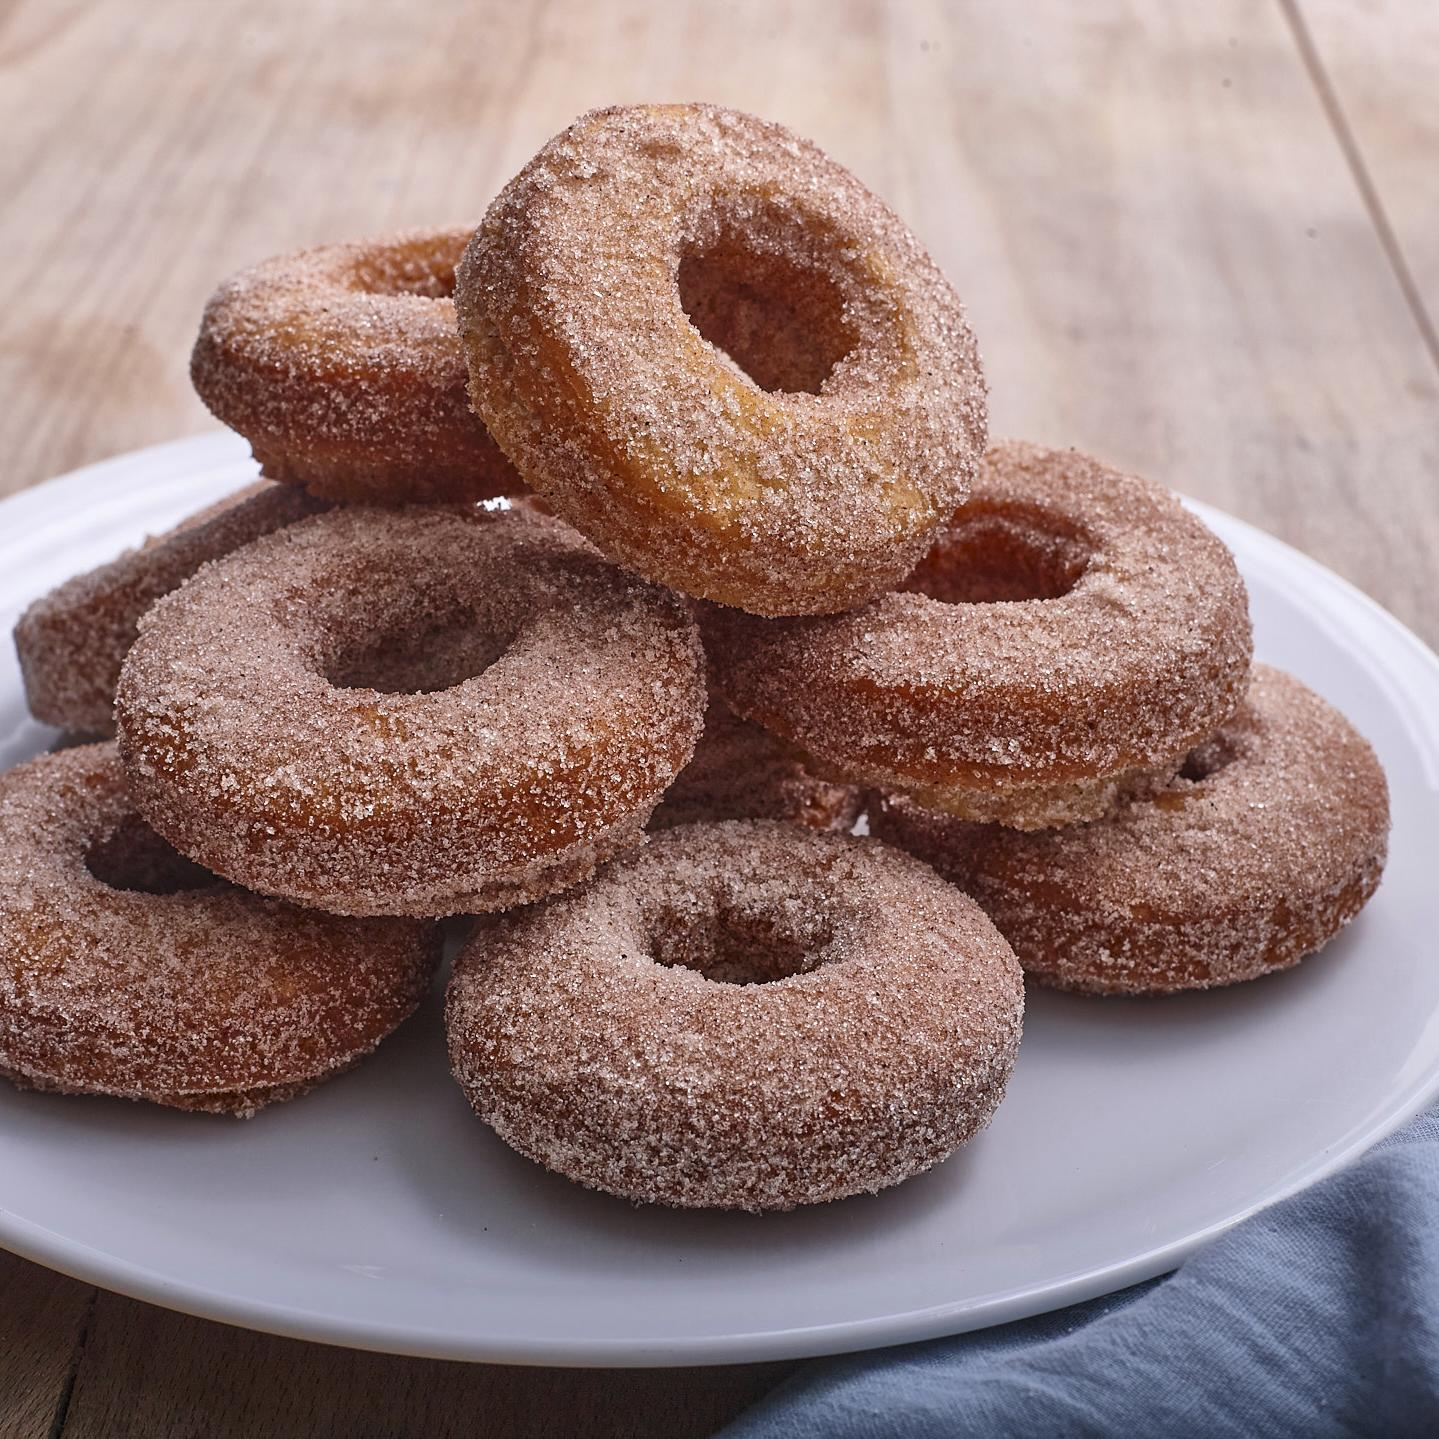 A pile of sugared donuts on a white plate with a blue napkin tucked underneath.